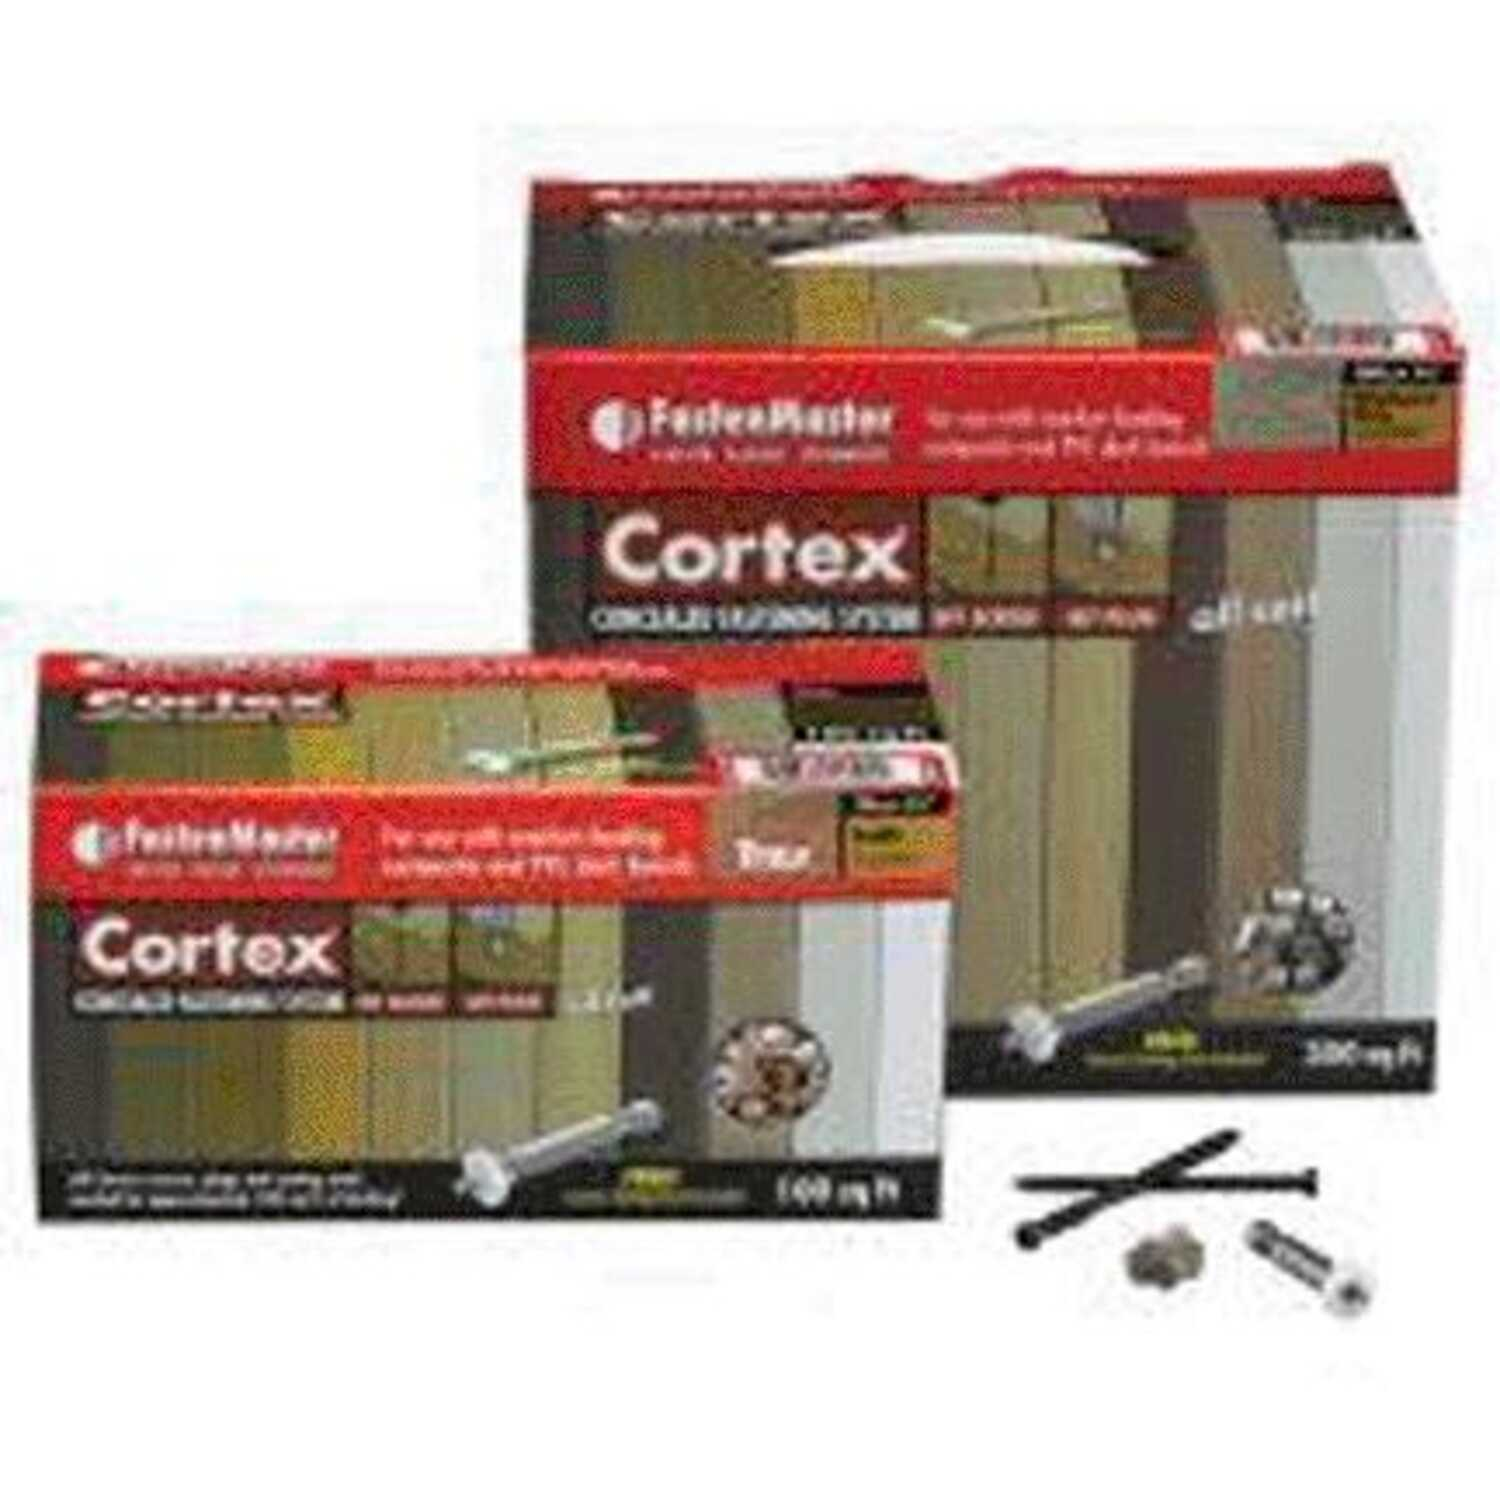 FastenMaster  Cortex  2-3/4 in. L Torx TTAP  Star Head Vintage Lantern  Stainless Steel  Hidden Deck